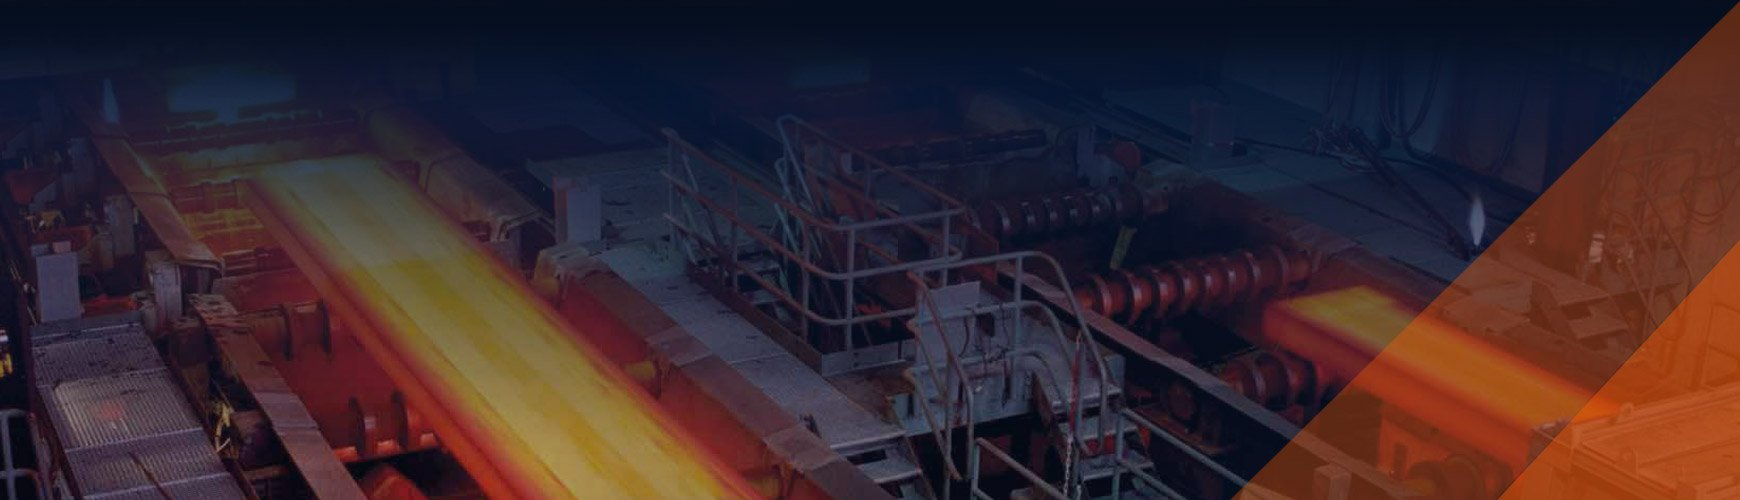 HSEC Suppliers & Exporters of Steel Pipes, Tubes, Butt weld